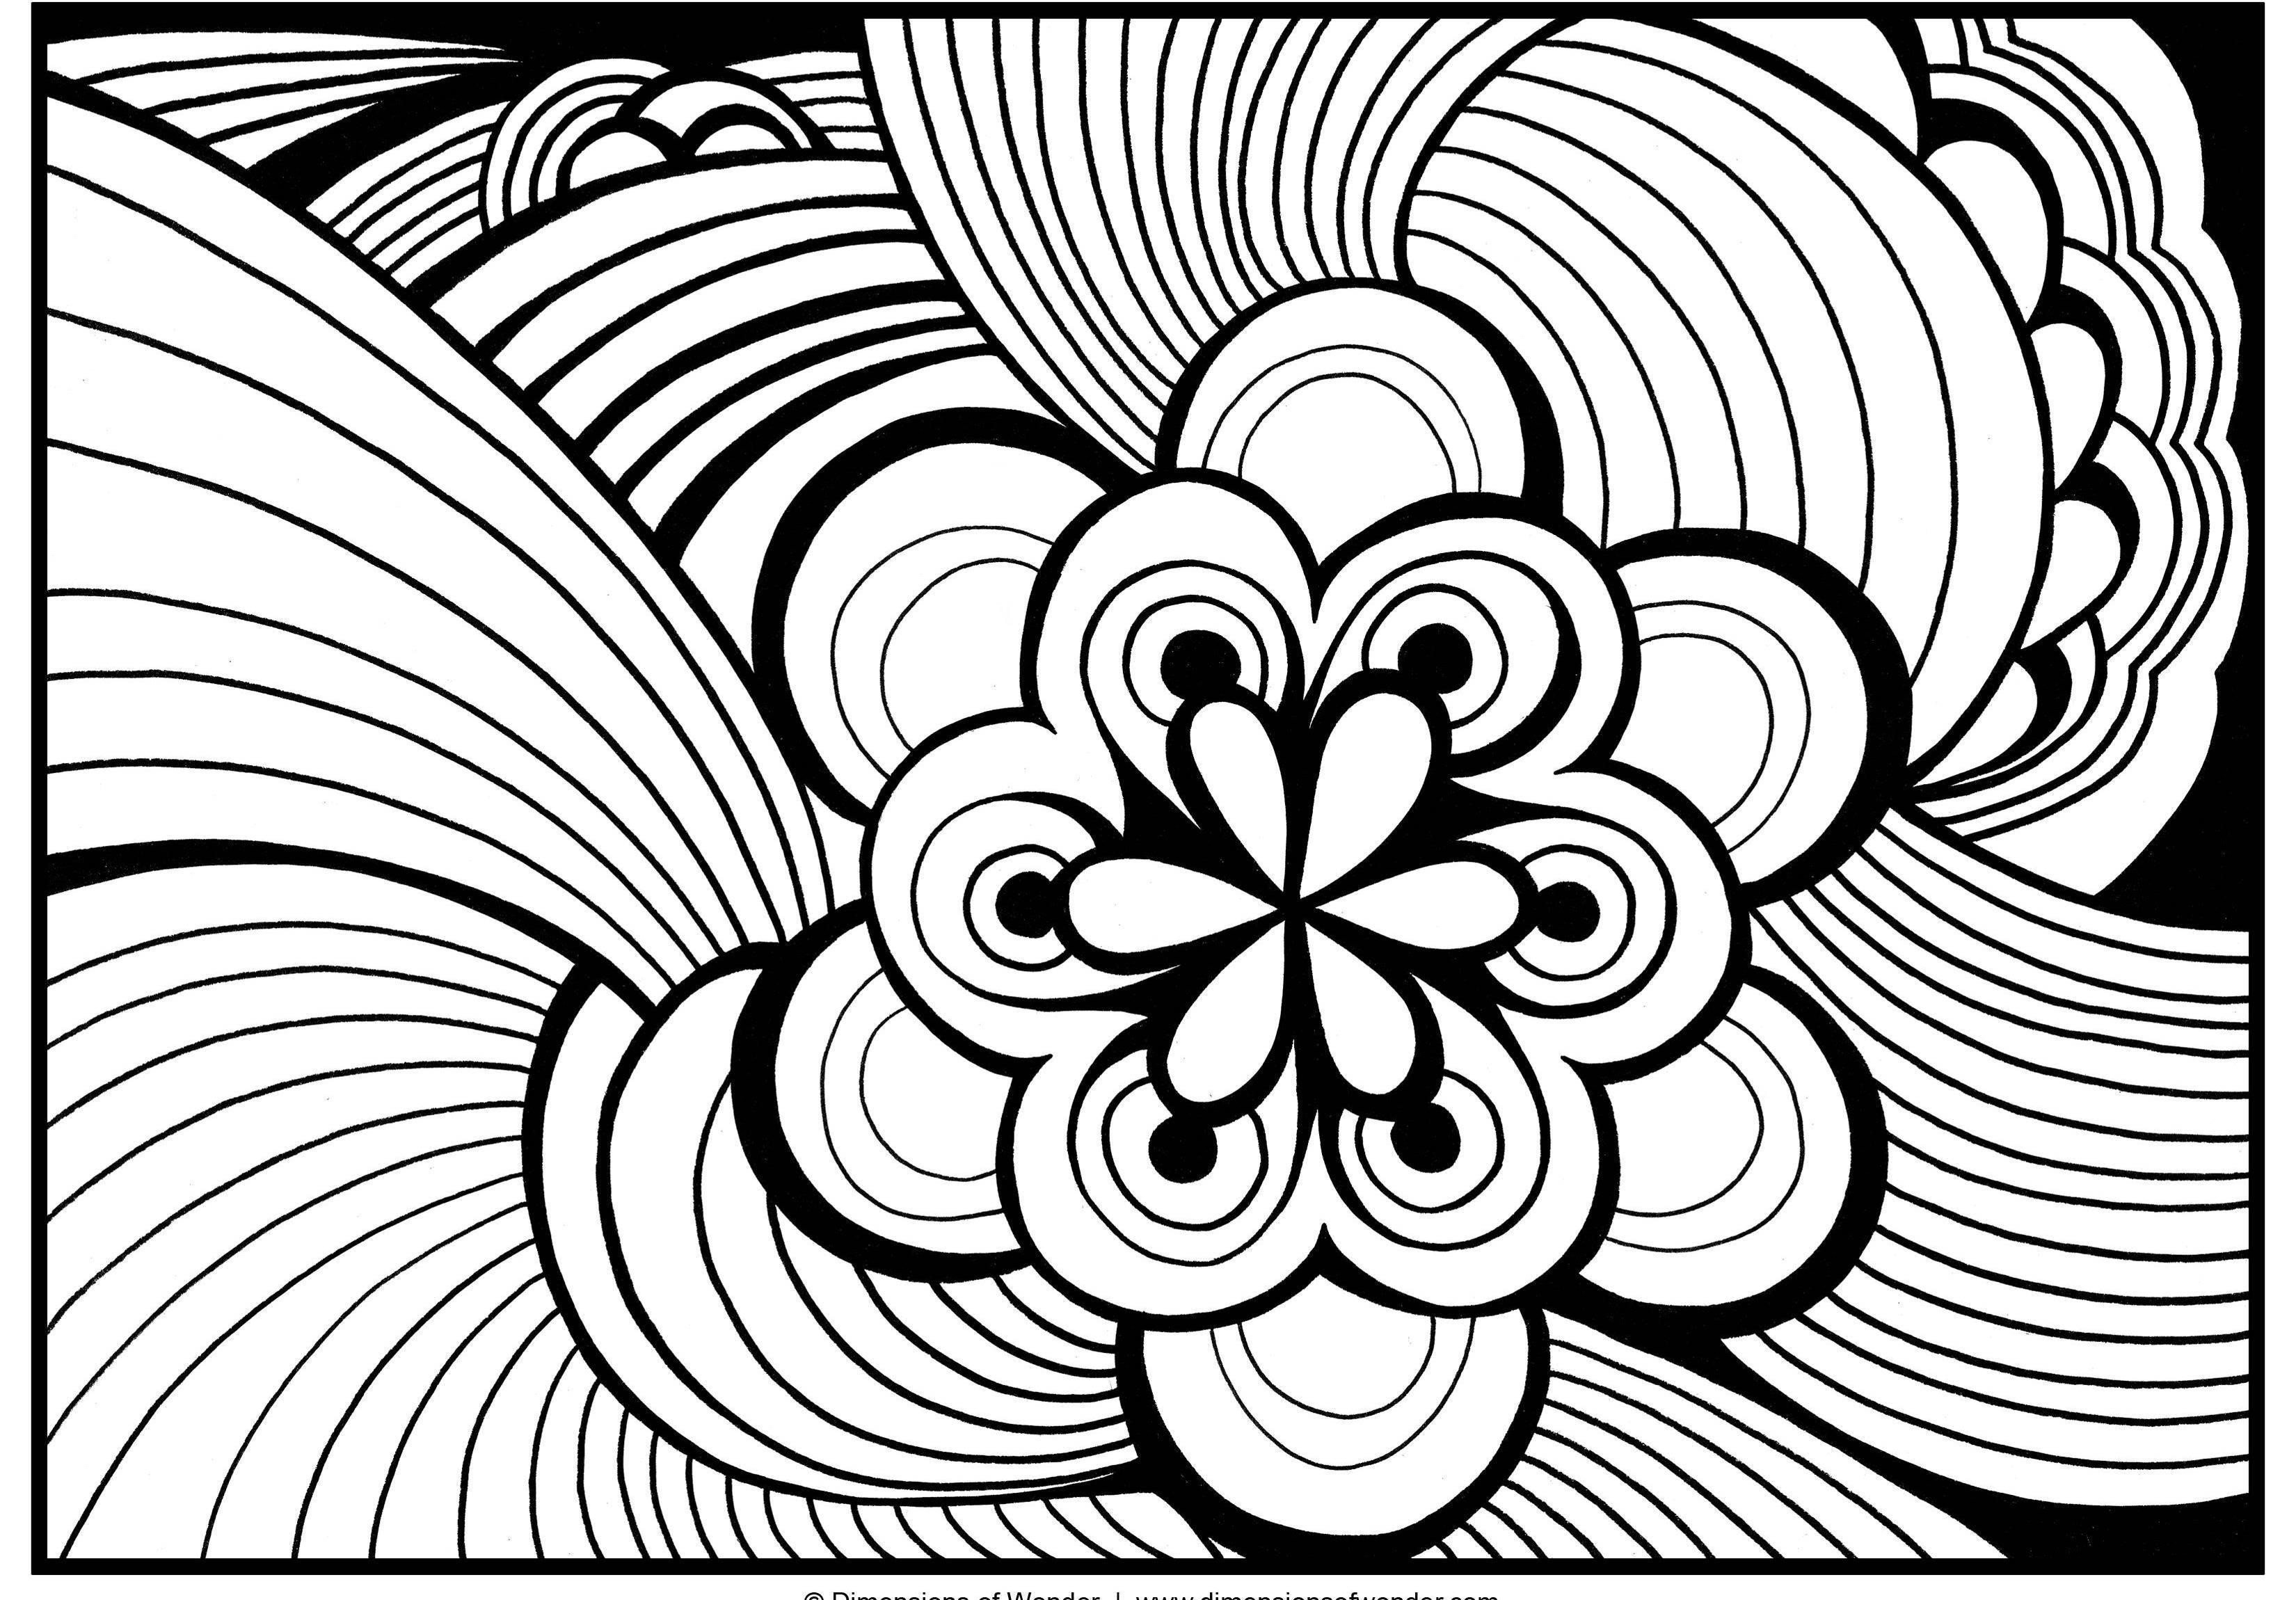 Printable Free Coloring Pages For Adults  Free Printable to Color for Adults 51 Coloring